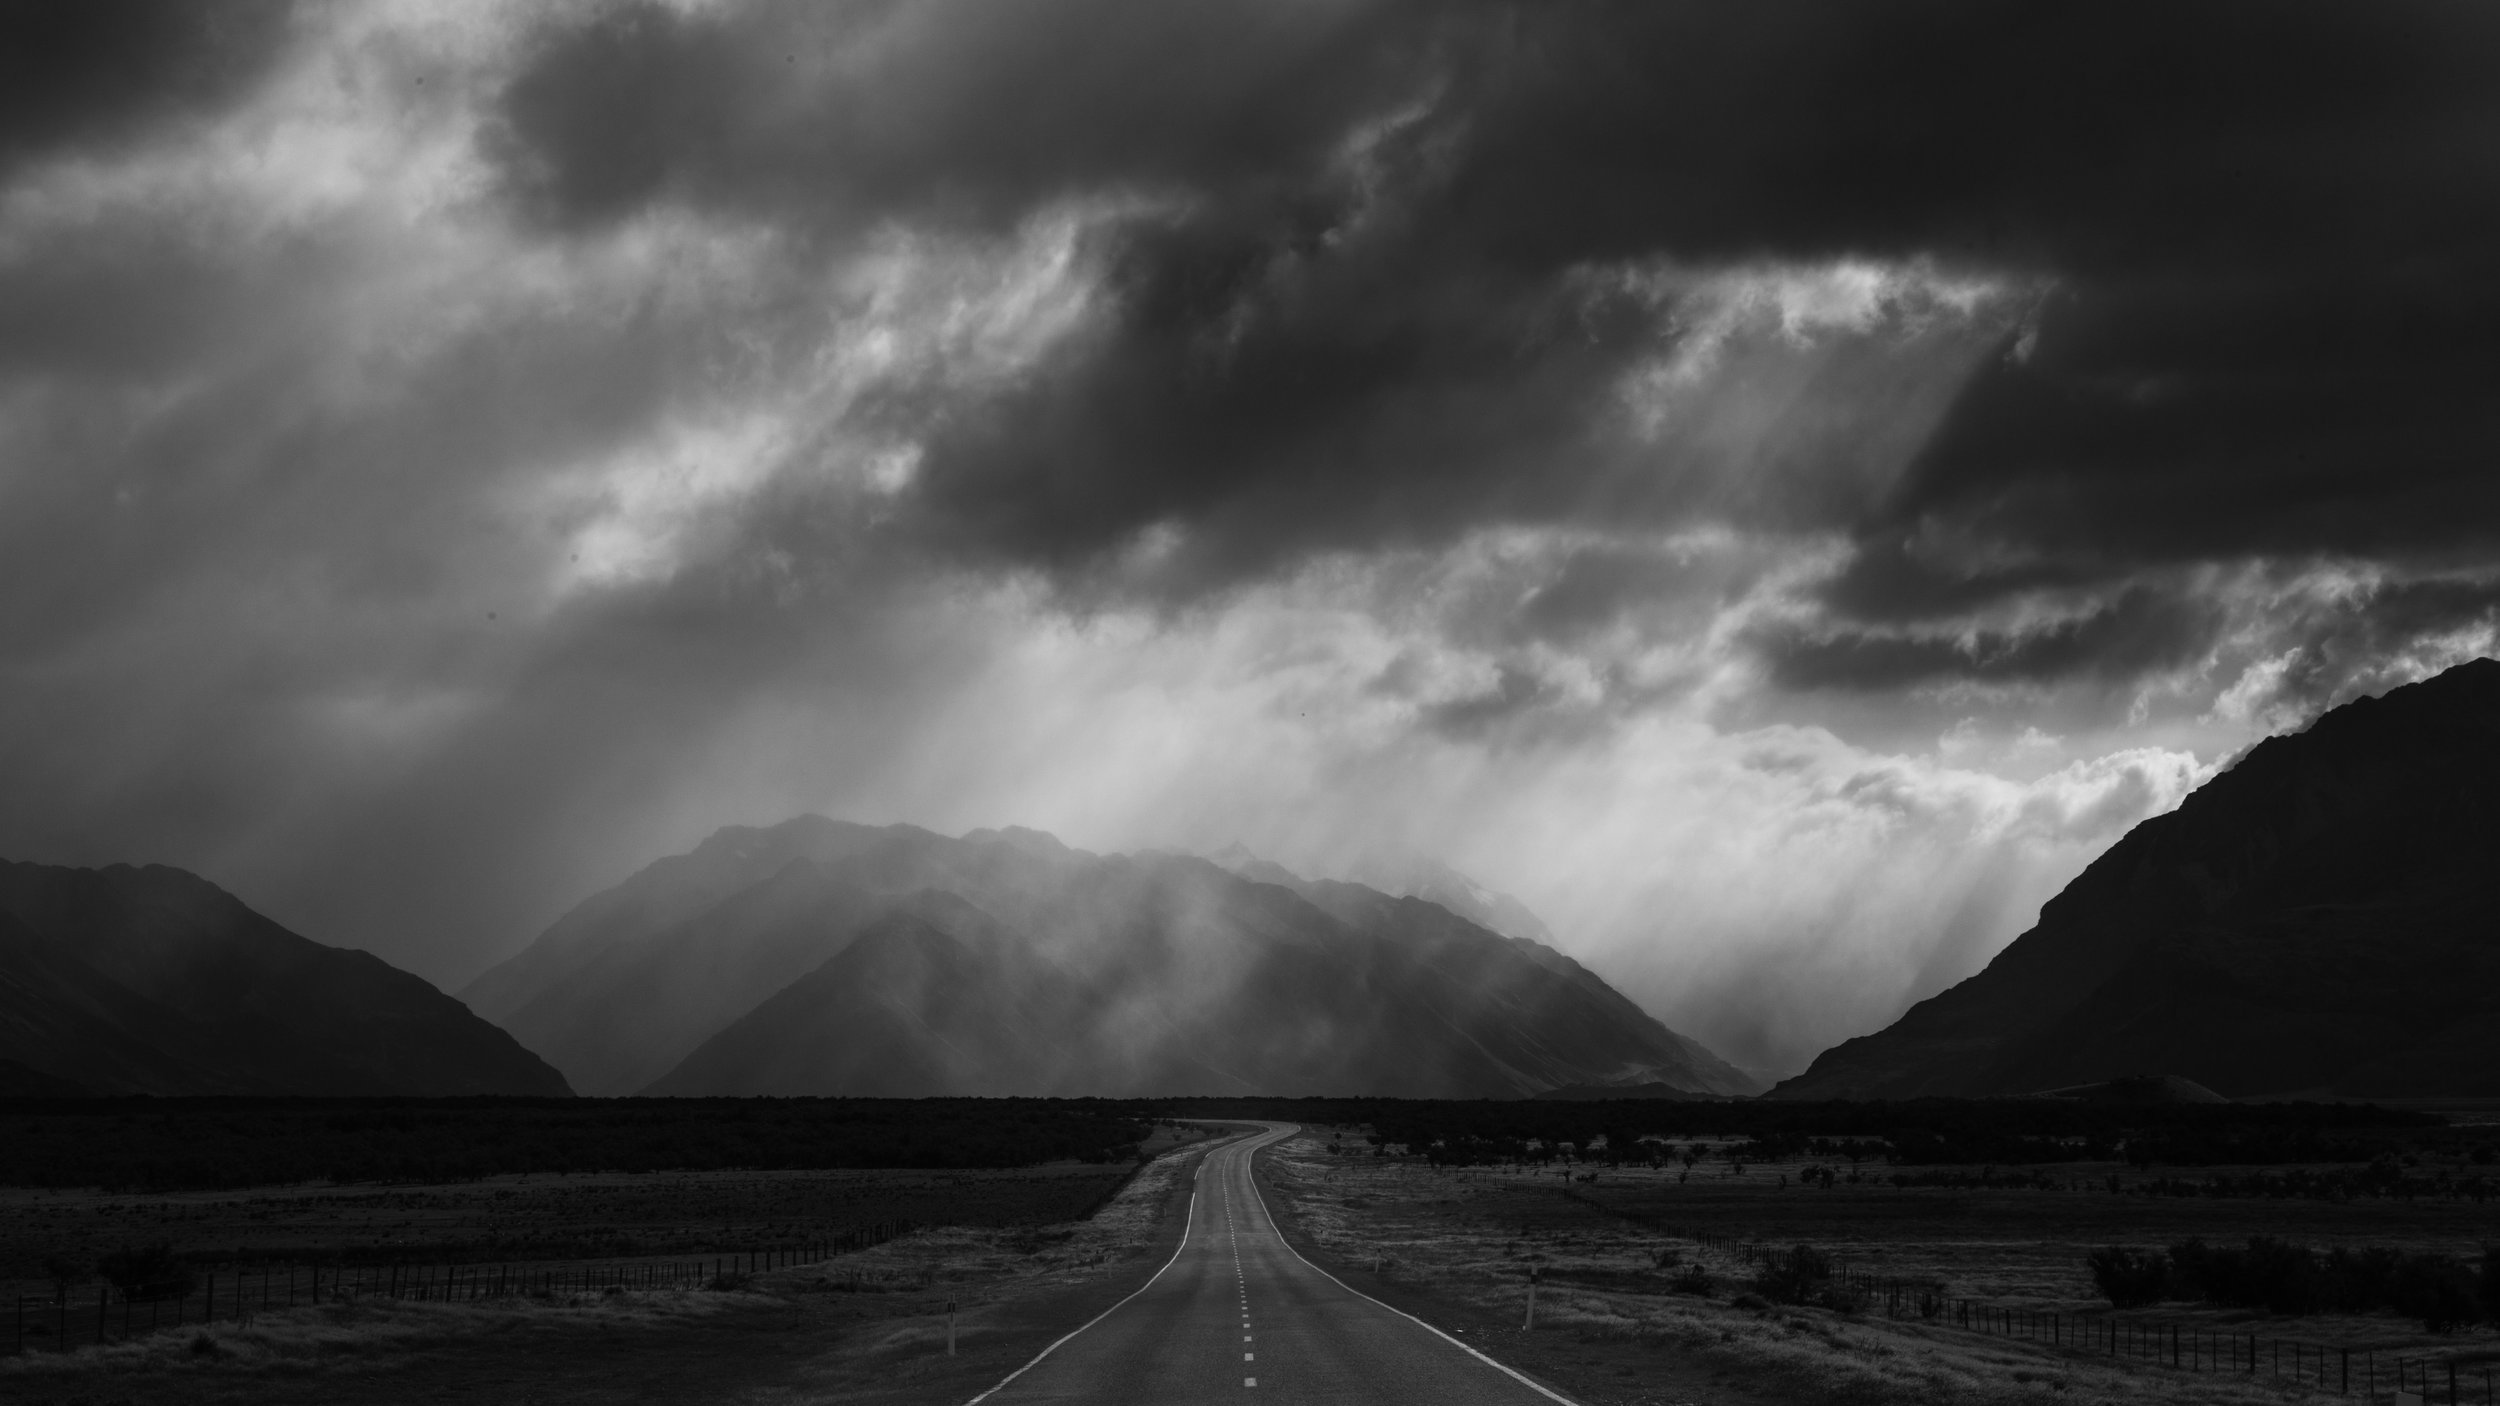 Geoff Cloake, Highway Storm, awarded in the psnz canon national exhibition